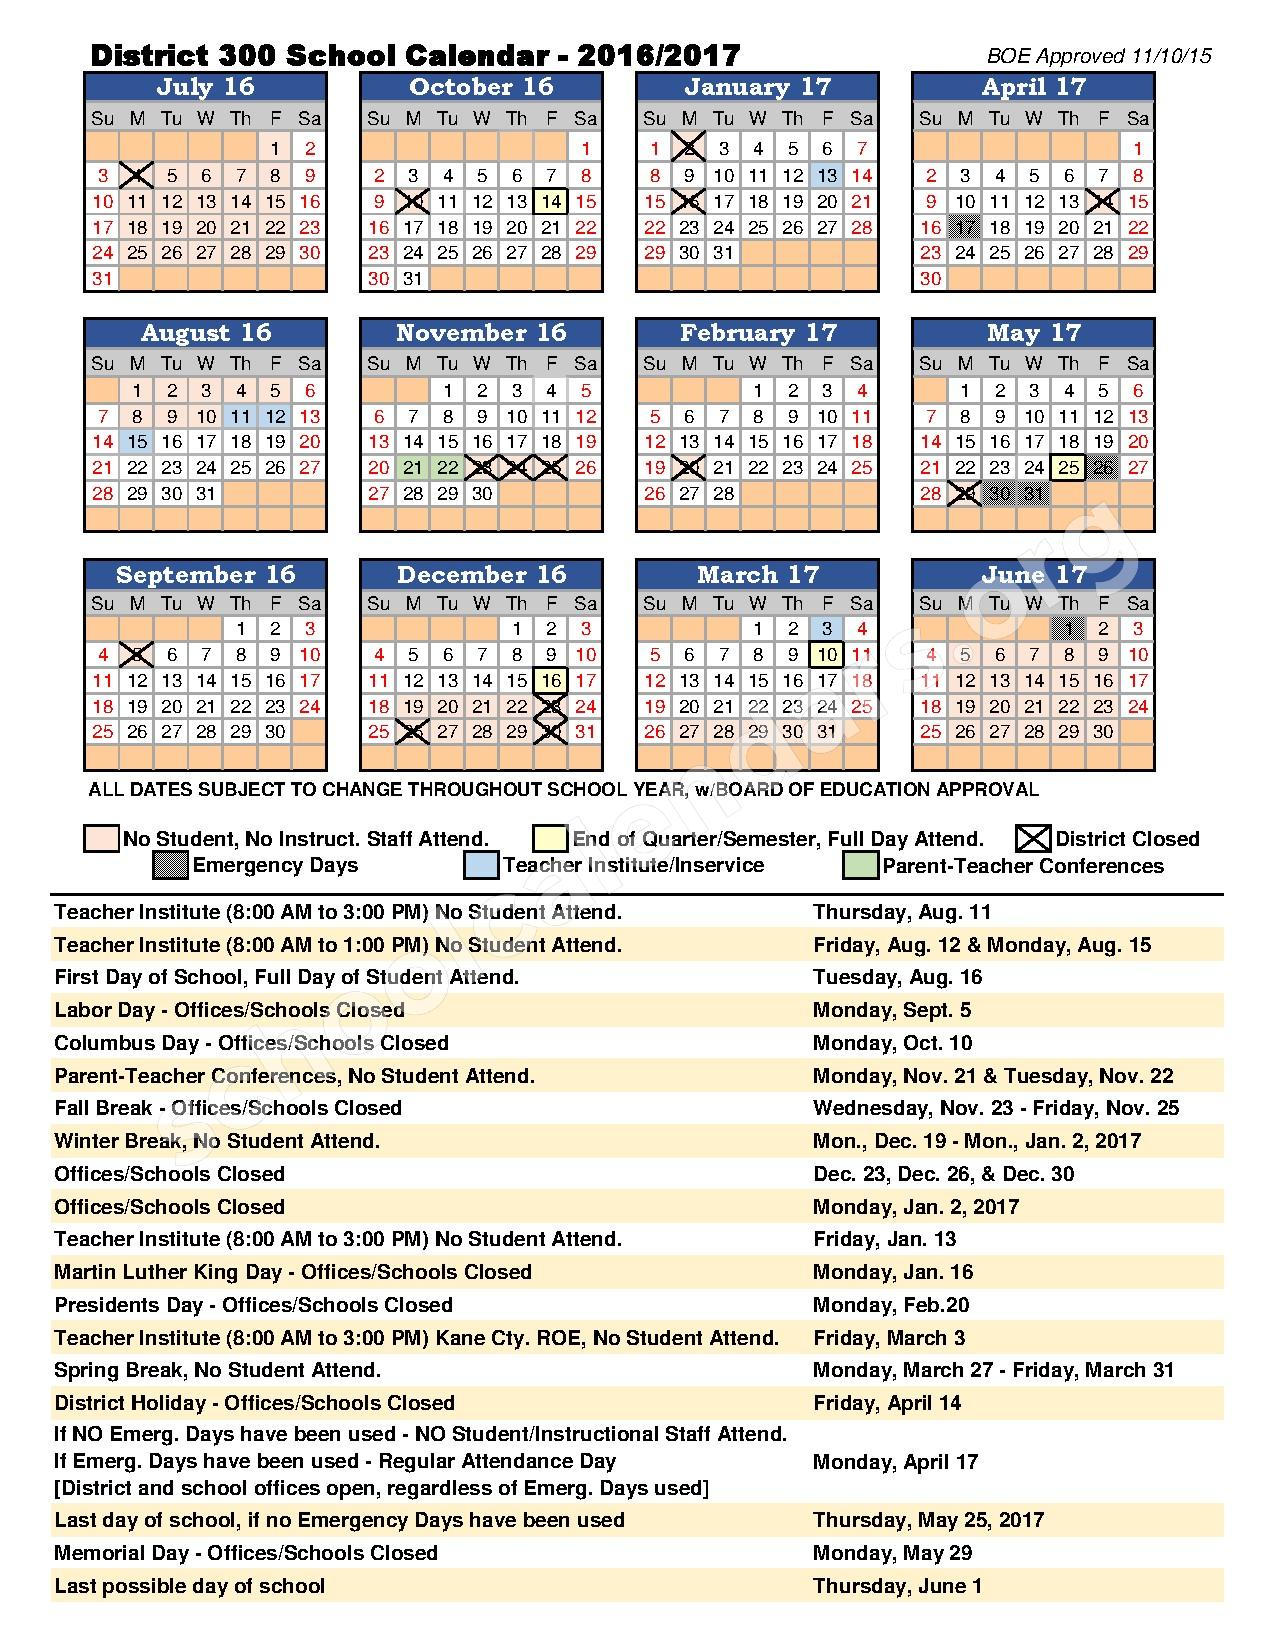 2016 - 2017 District Calendar – Perry Elementary School – page 1